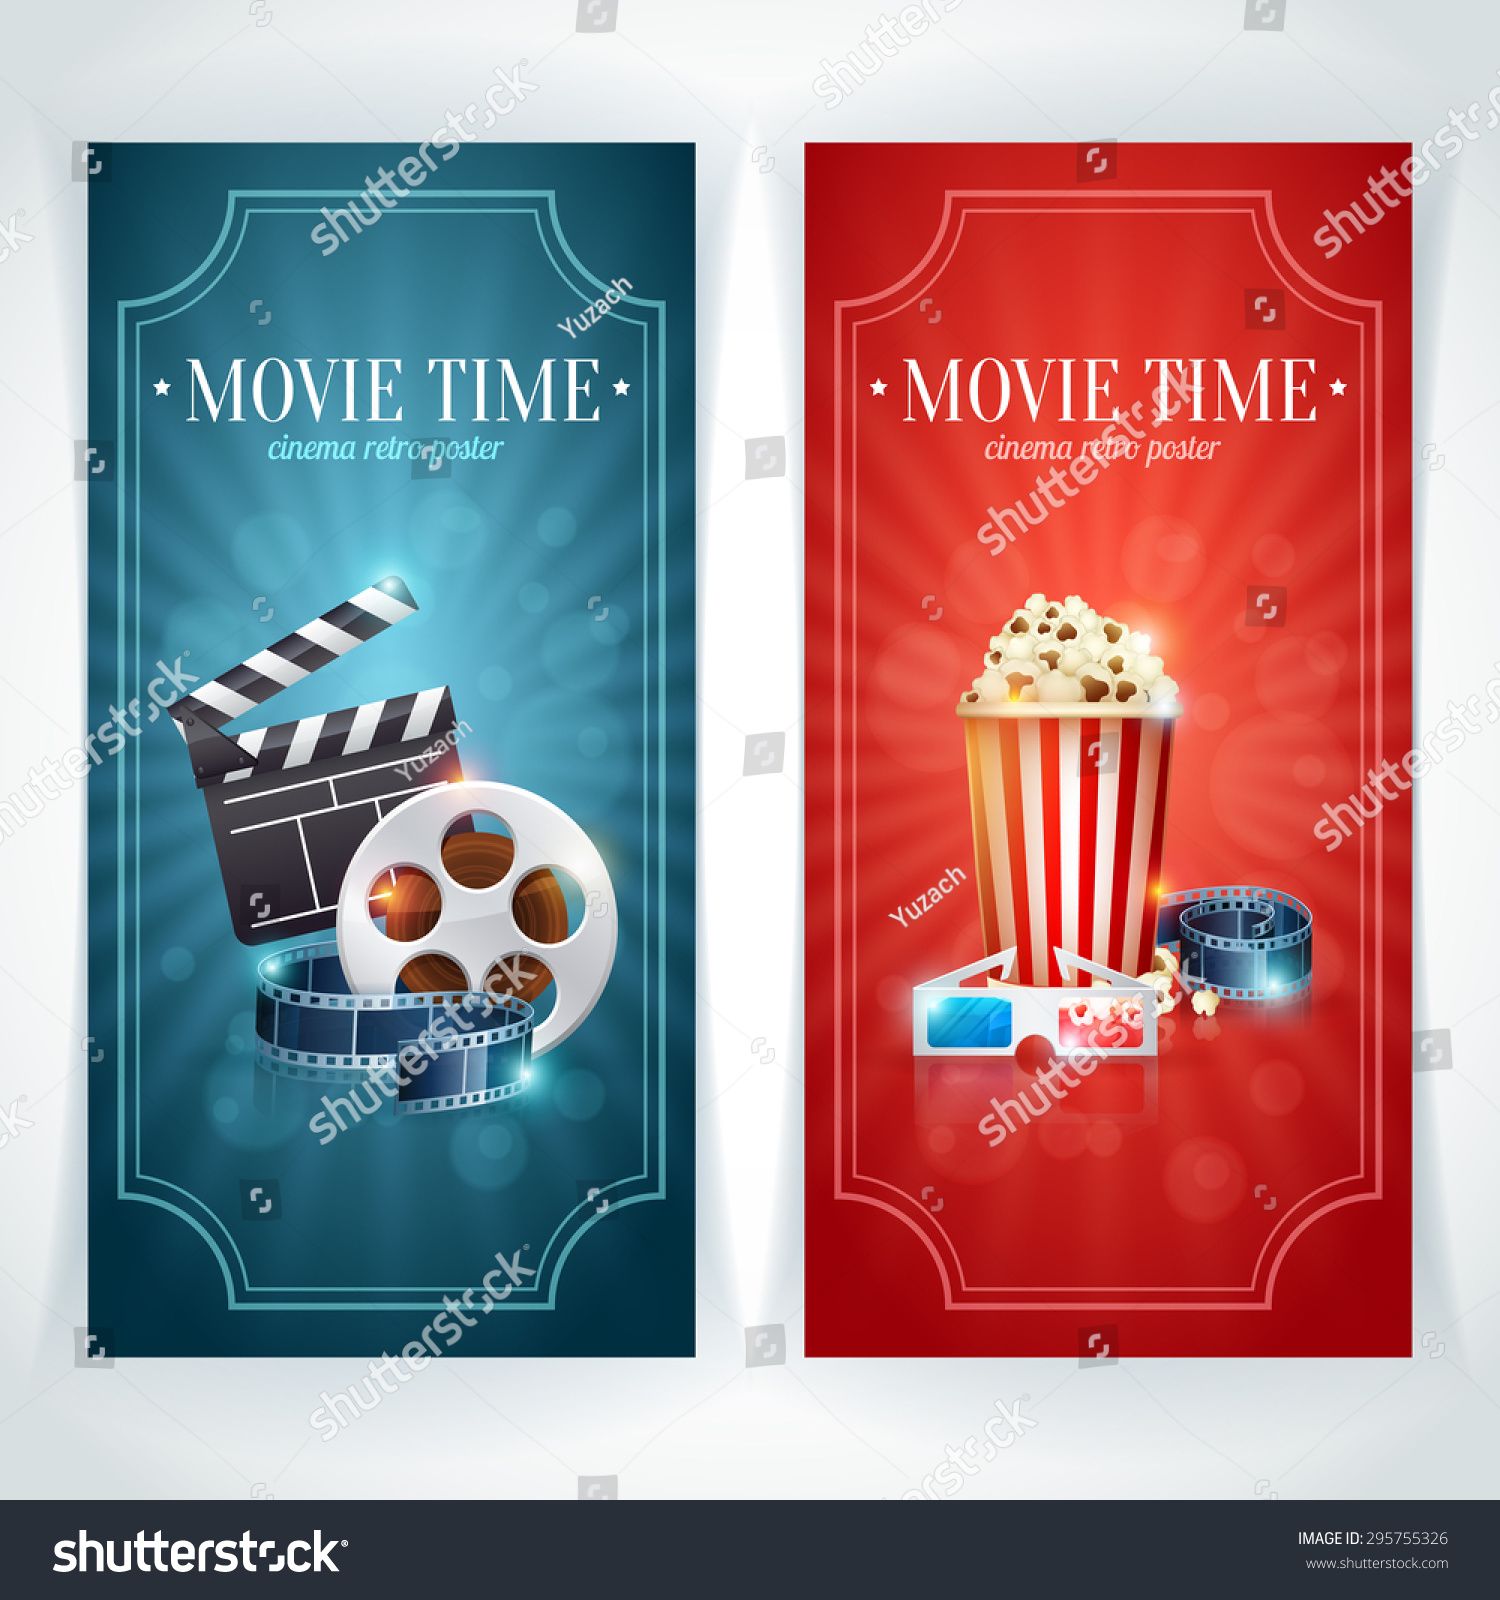 realistic cinema movie poster template with film reel clapper popcorn 3d glasses